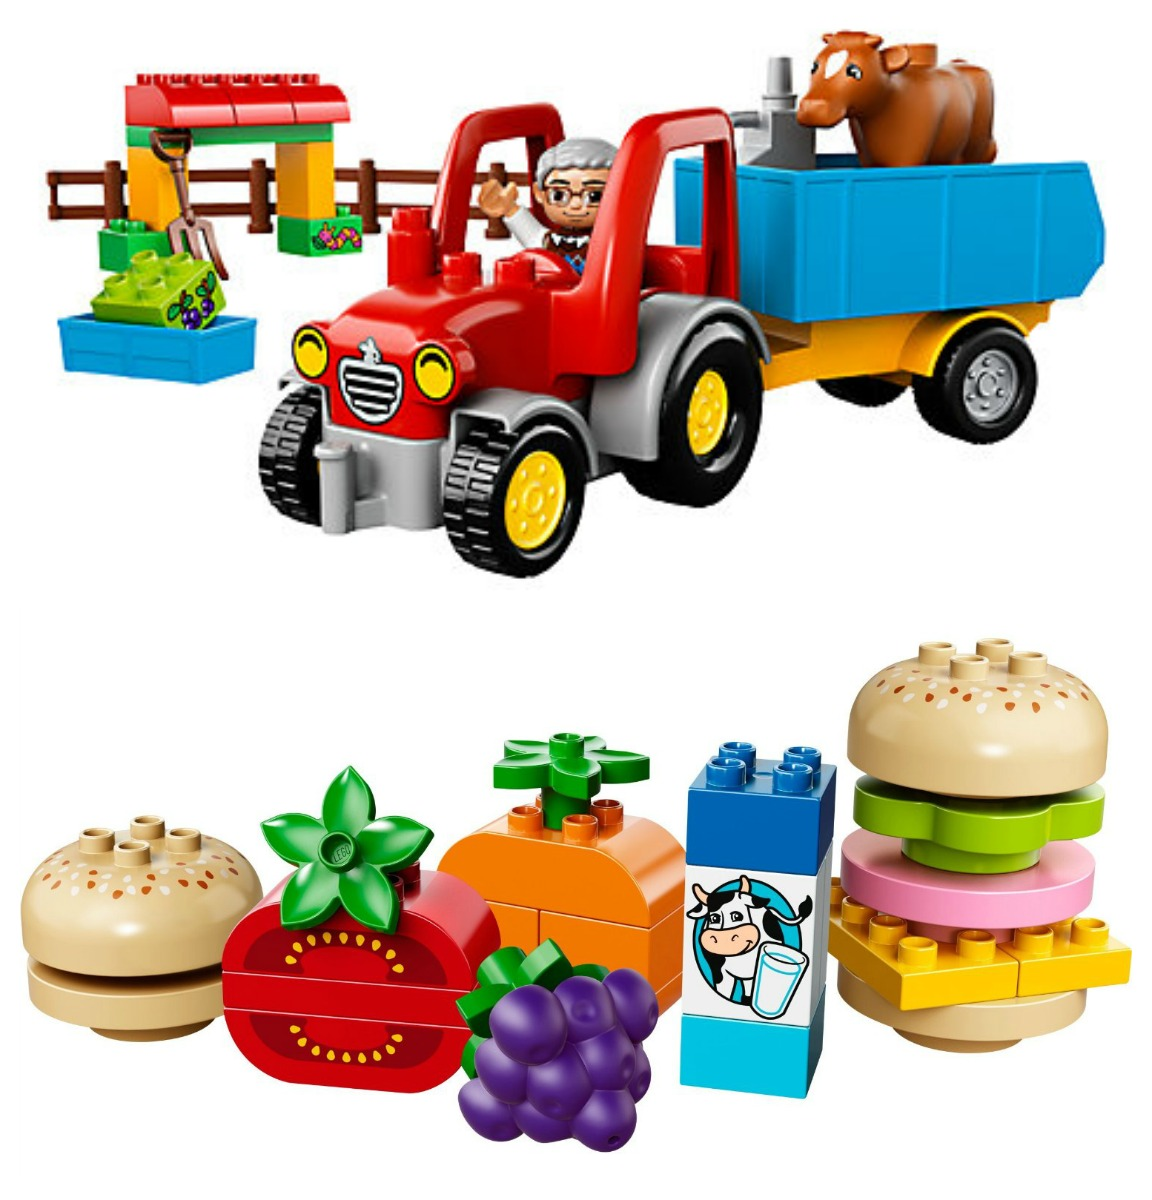 Lego Duplo Farm Tractor and Creative Picnic Sets